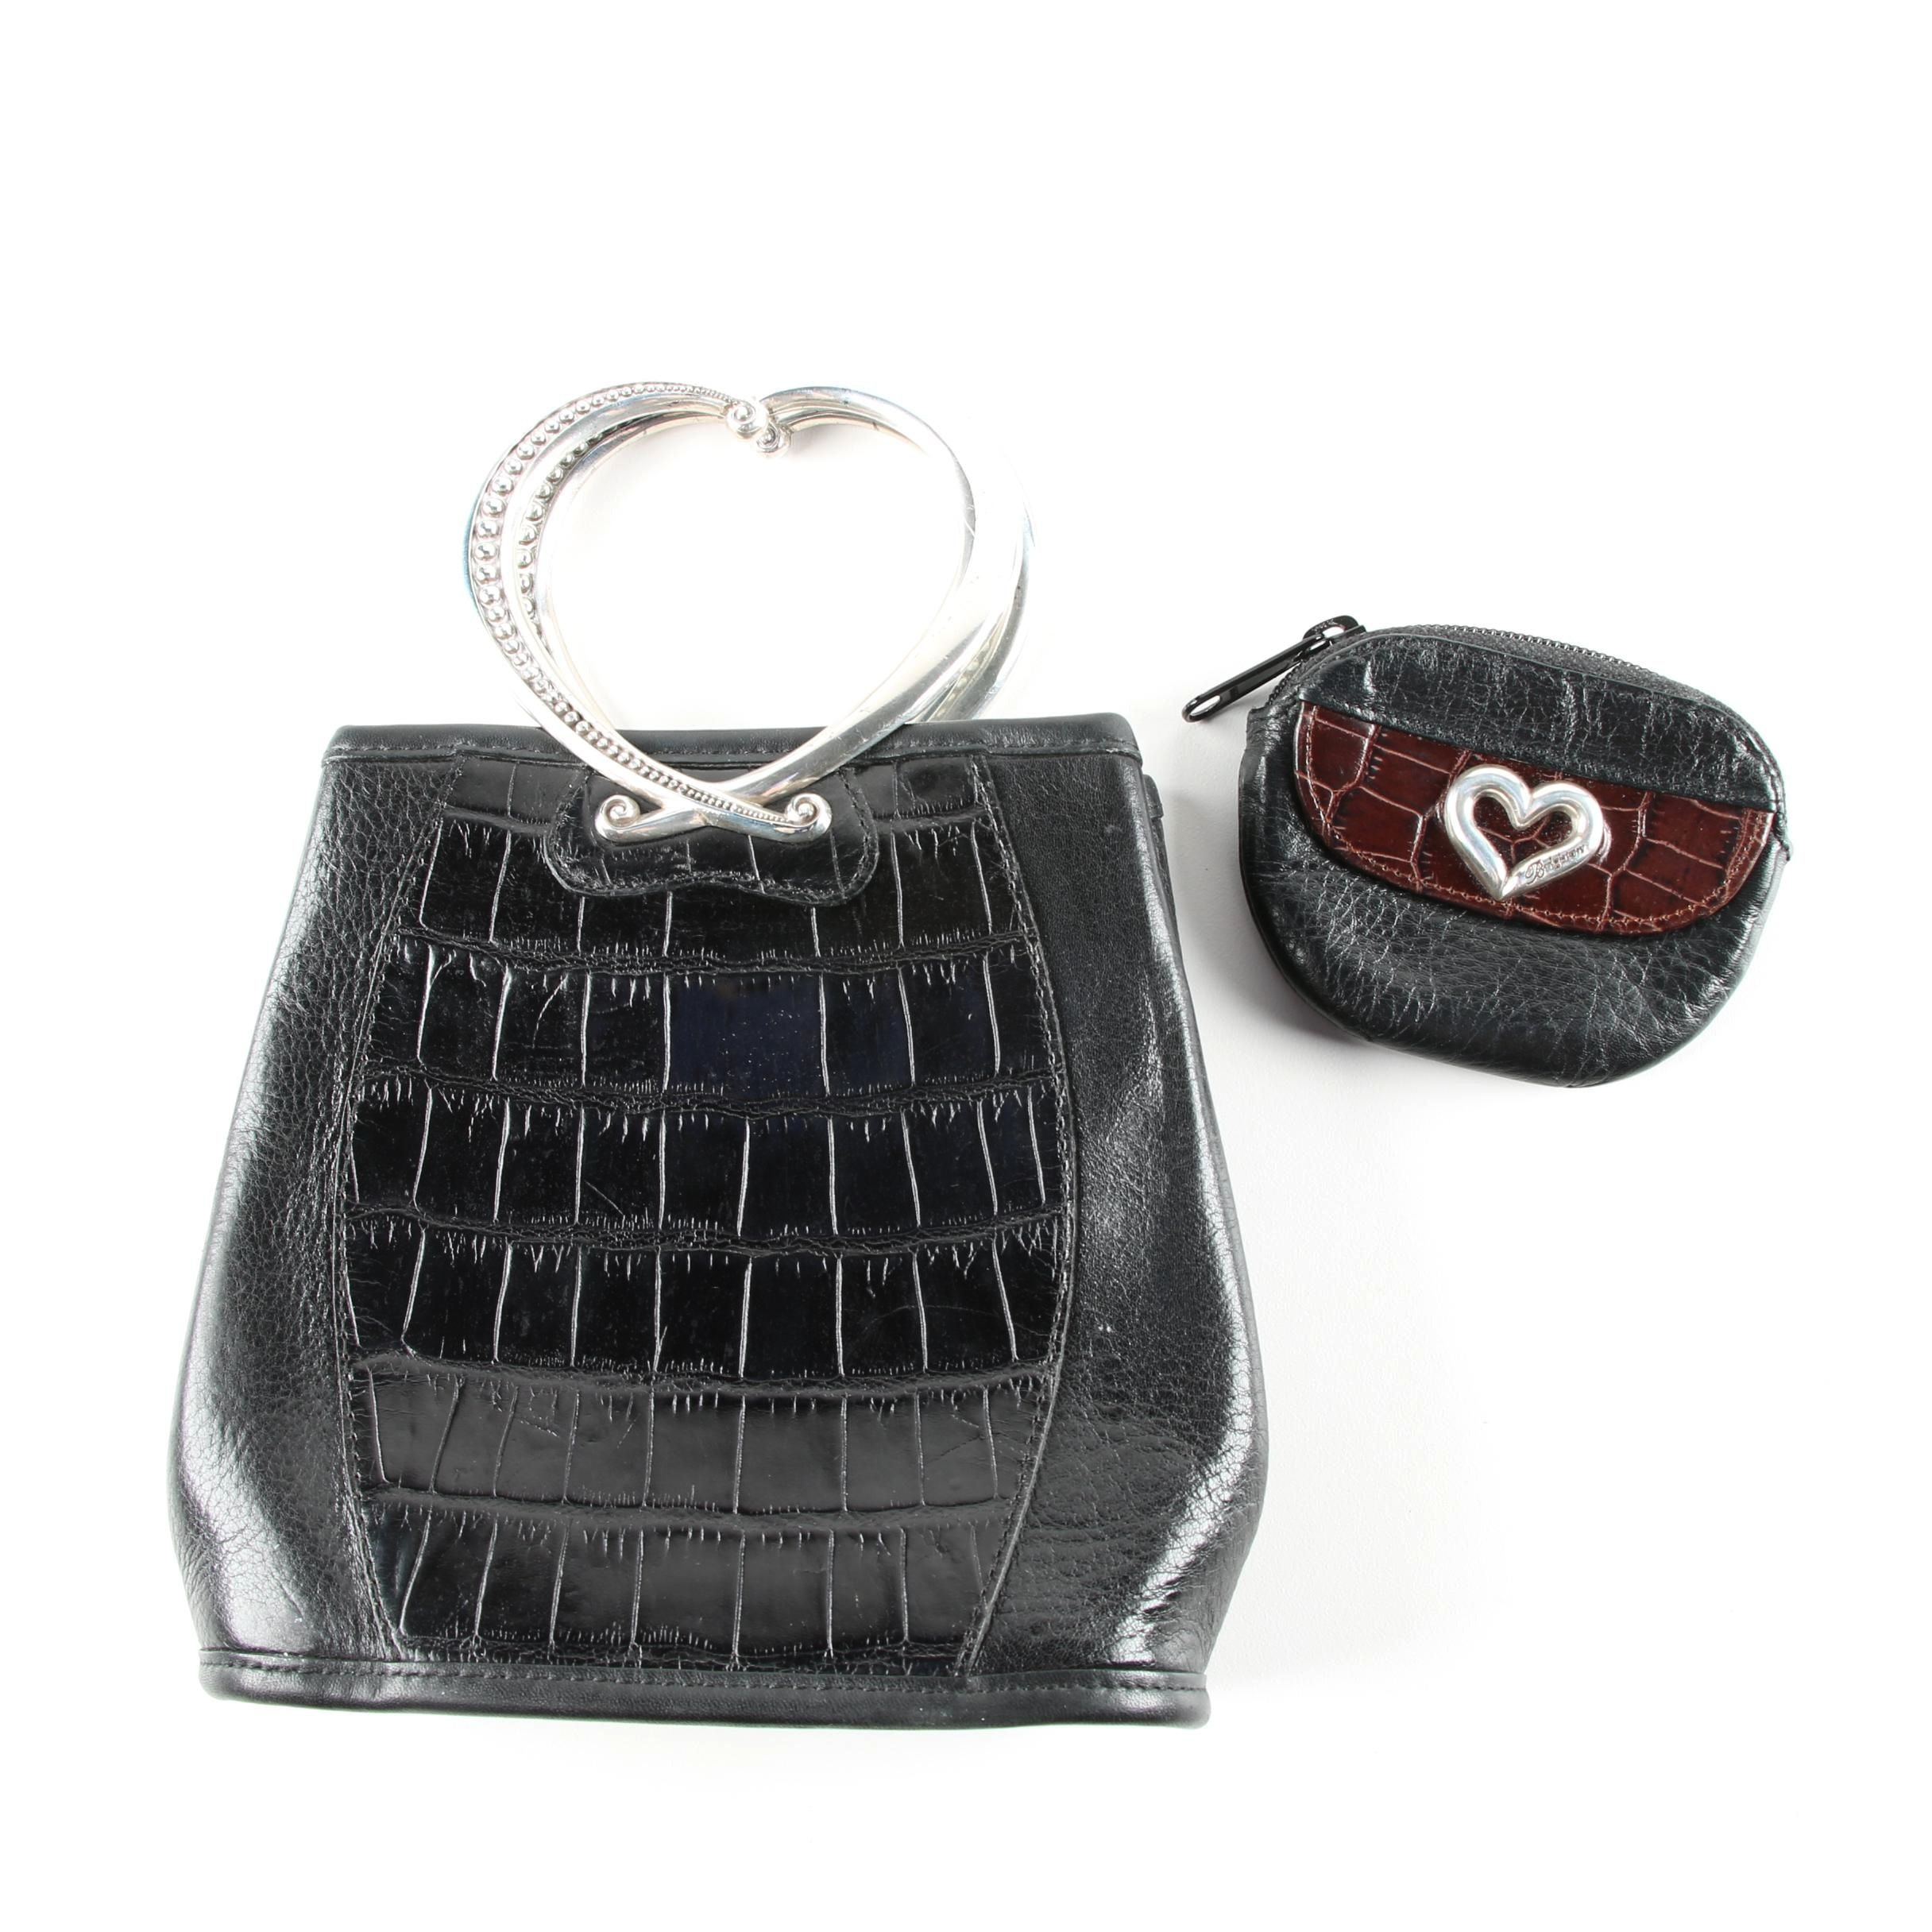 Brighton Heart Handled Leather Bag with Coin Purse